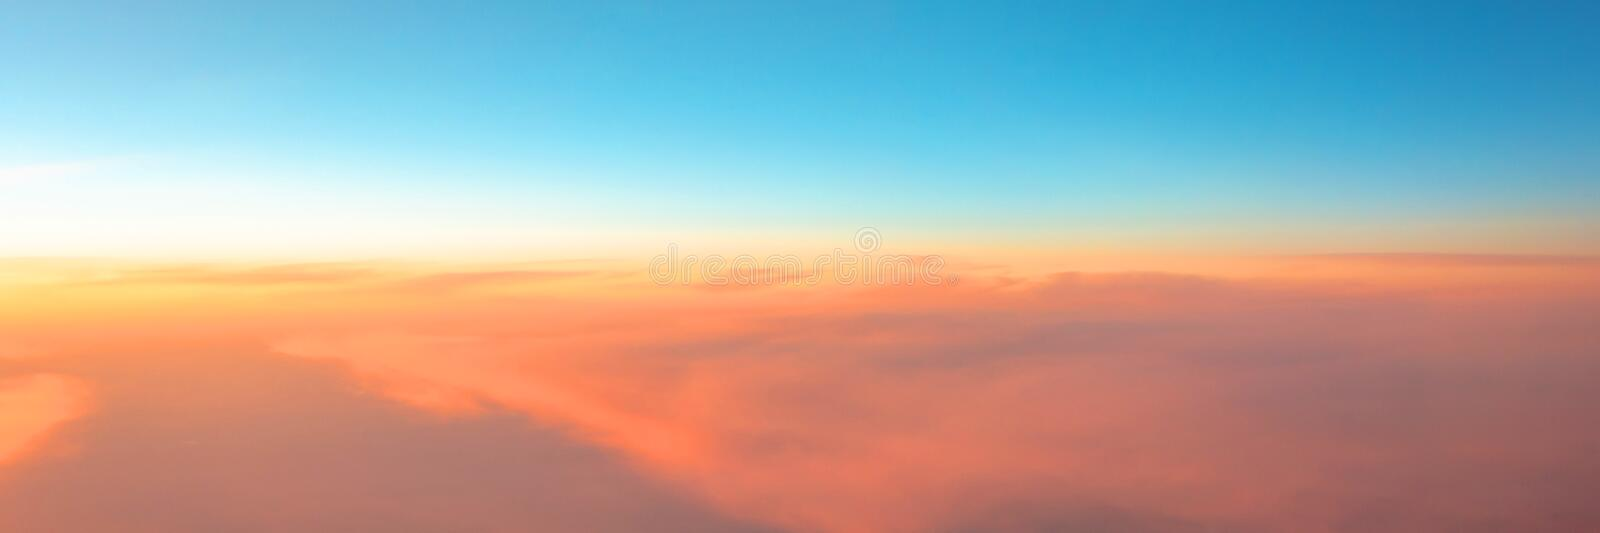 Panorama of the evening sky sunset gradient from warm to cold color royalty free stock photos